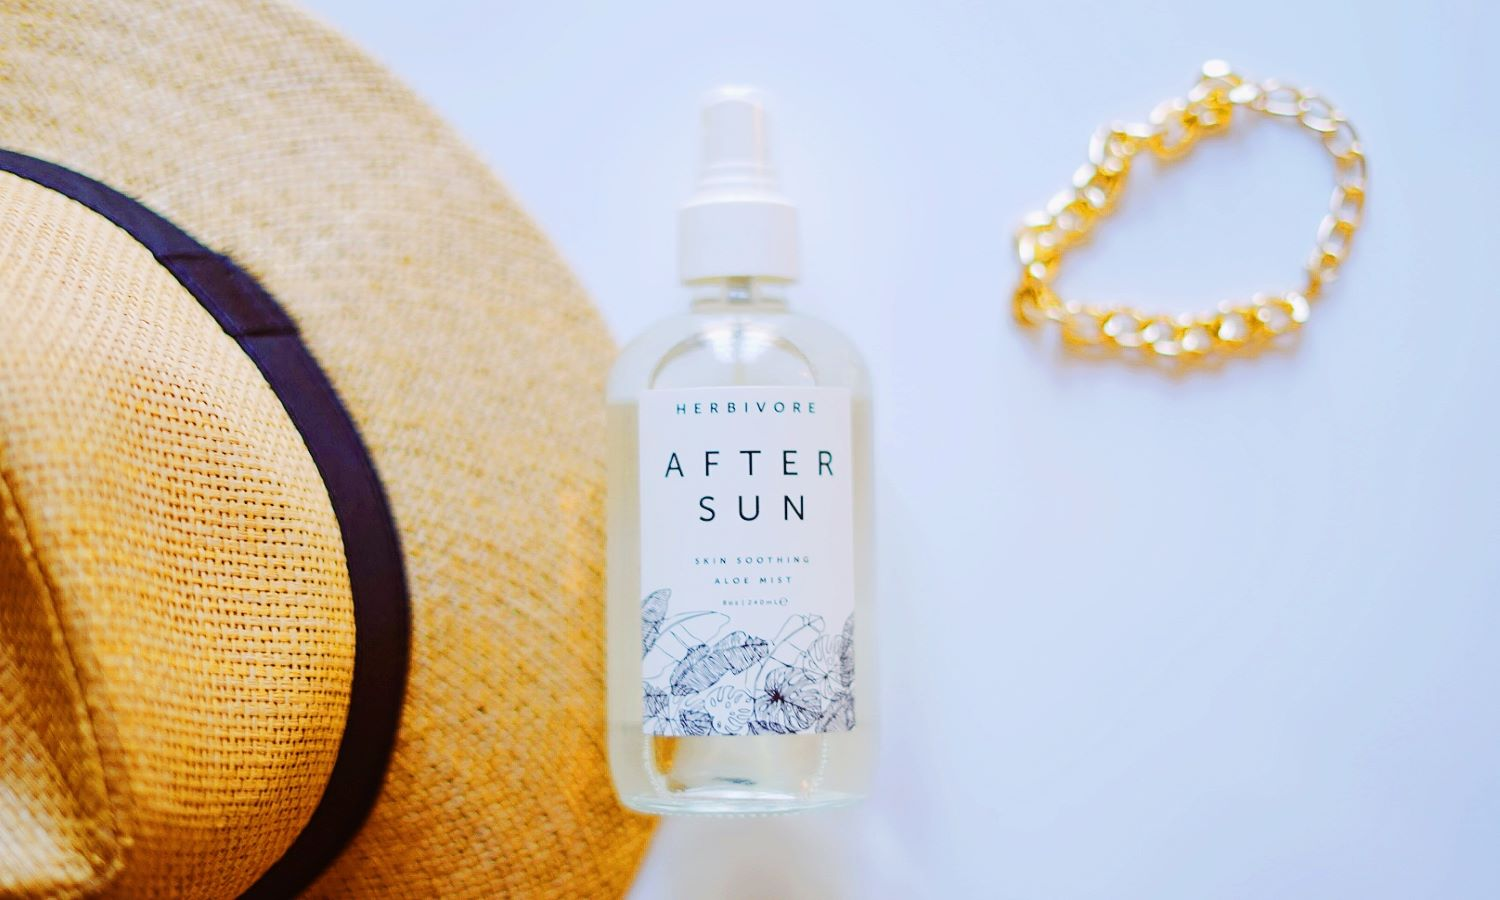 Herbivore After Sun Skin Soothing Aloe Mist review